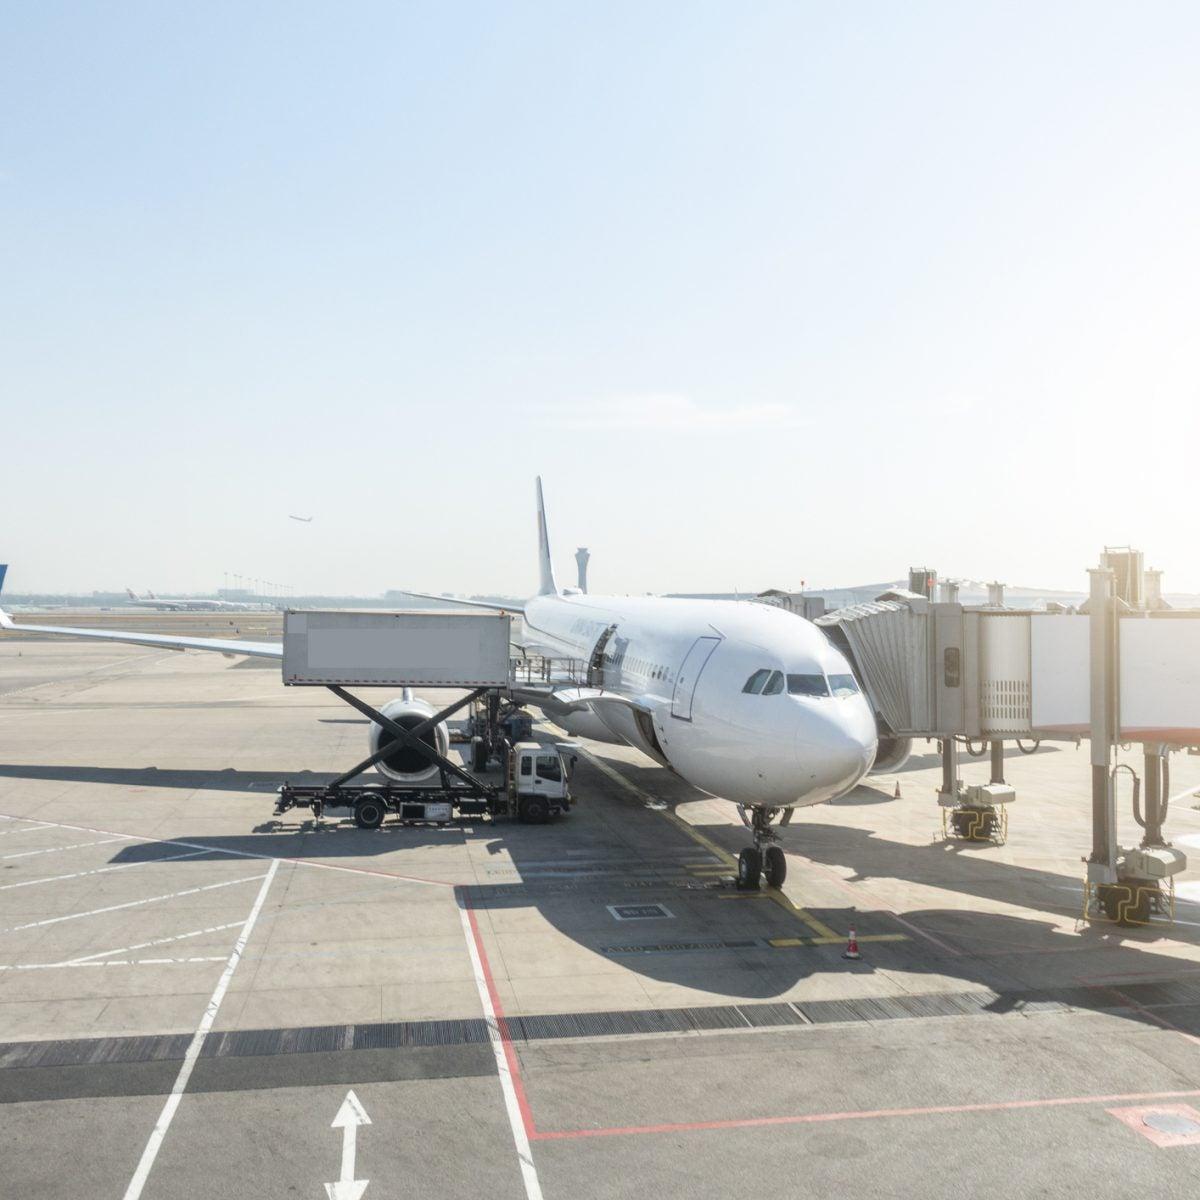 Flights Canceled Due To COVID-19? Here's What You Need To Know